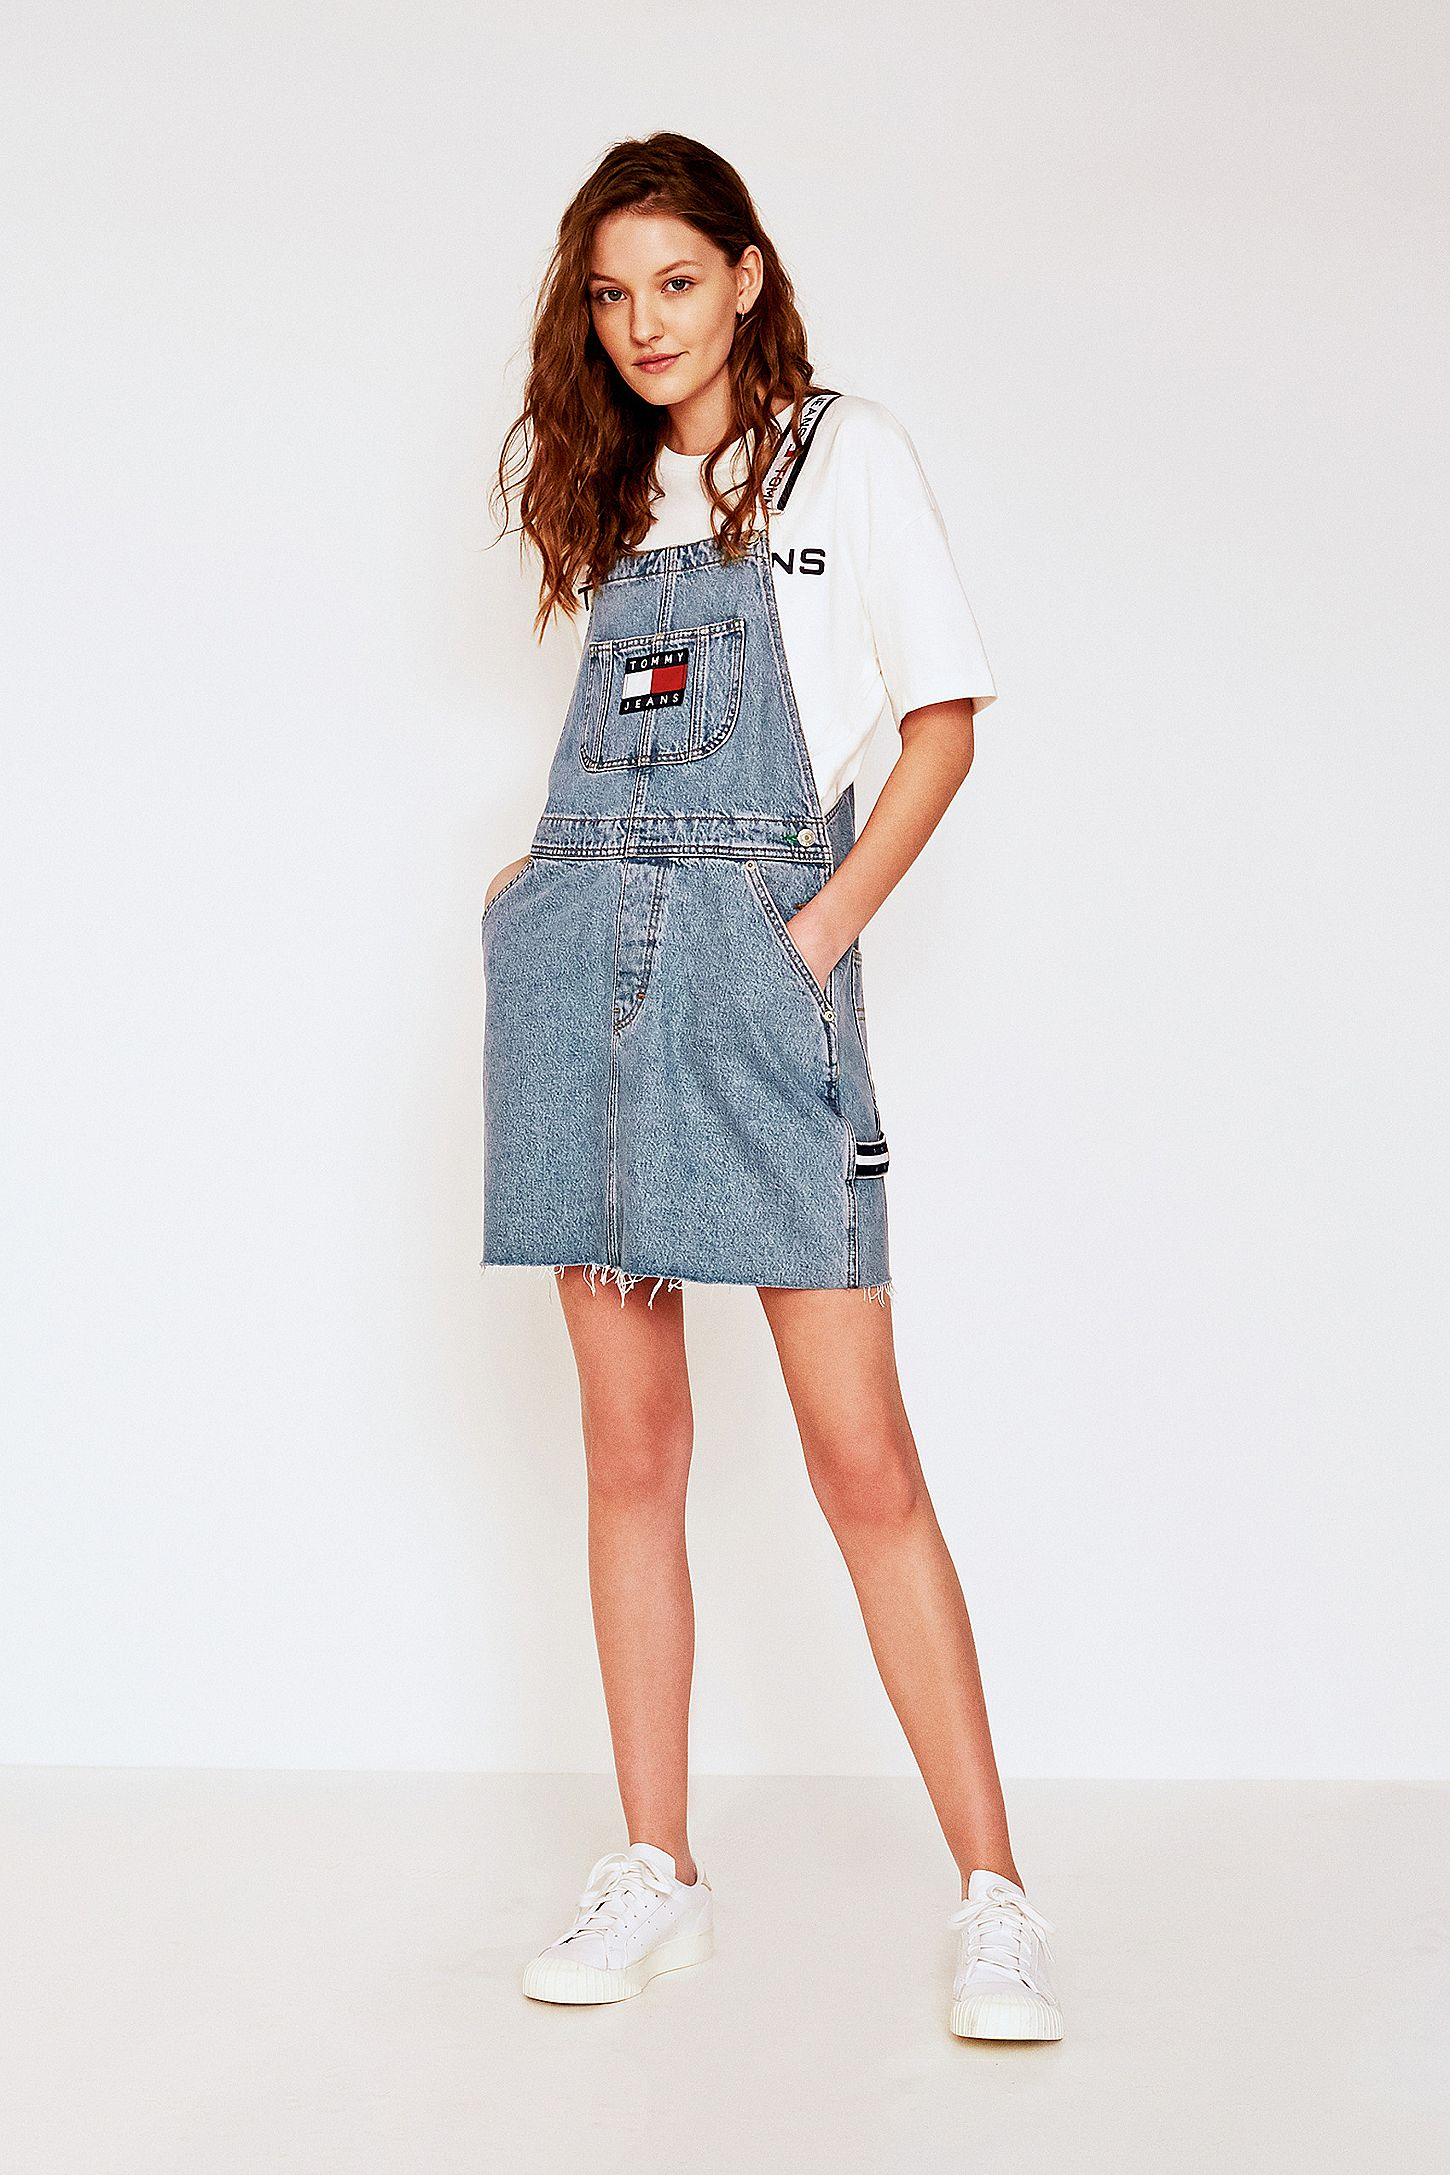 284eb06f161 Tommy Jeans Denim Dungarees Dress